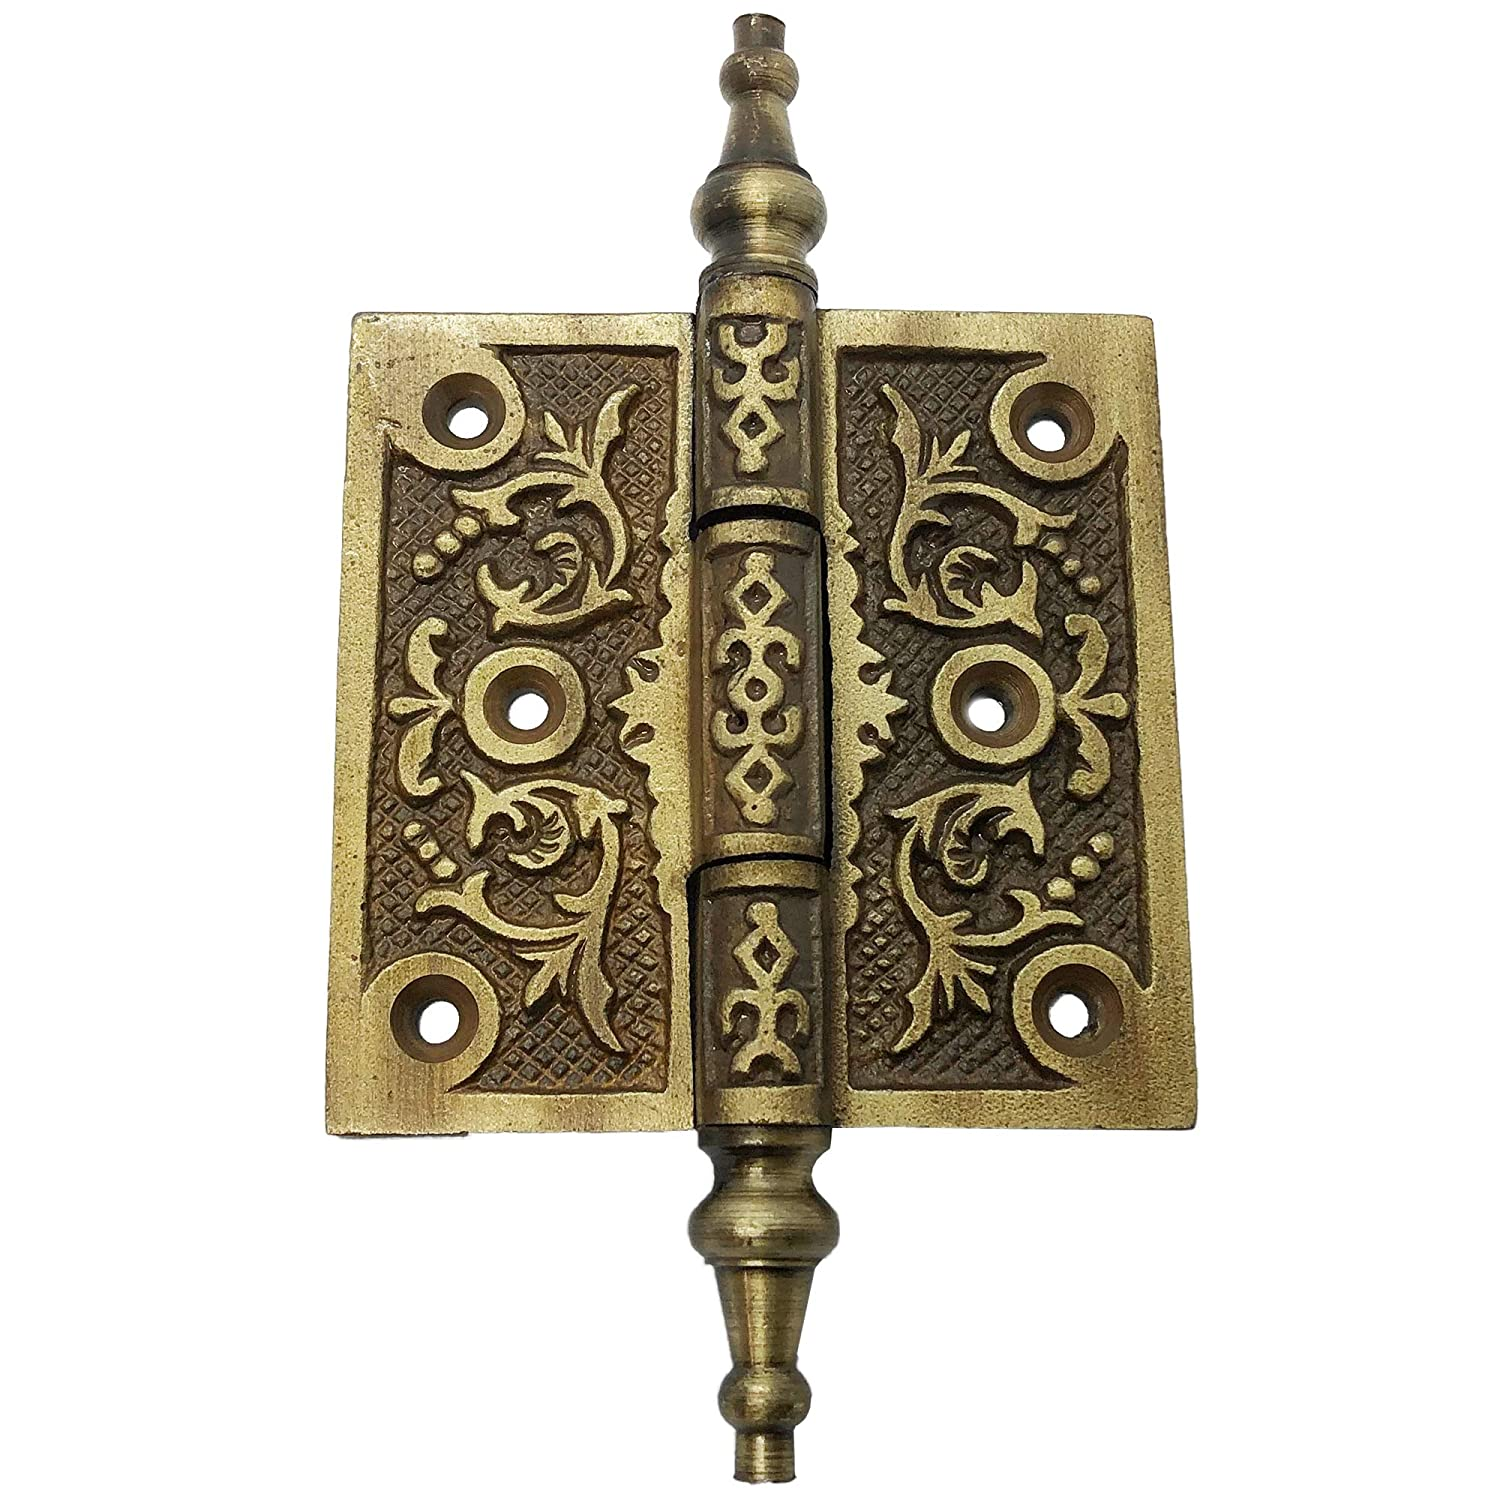 6 Iron Hinge Ornate Iron Victorian Hinges Antique Style Iron Hinge for Doors cabinets 2 HG-102 barn Door Hinges Gates